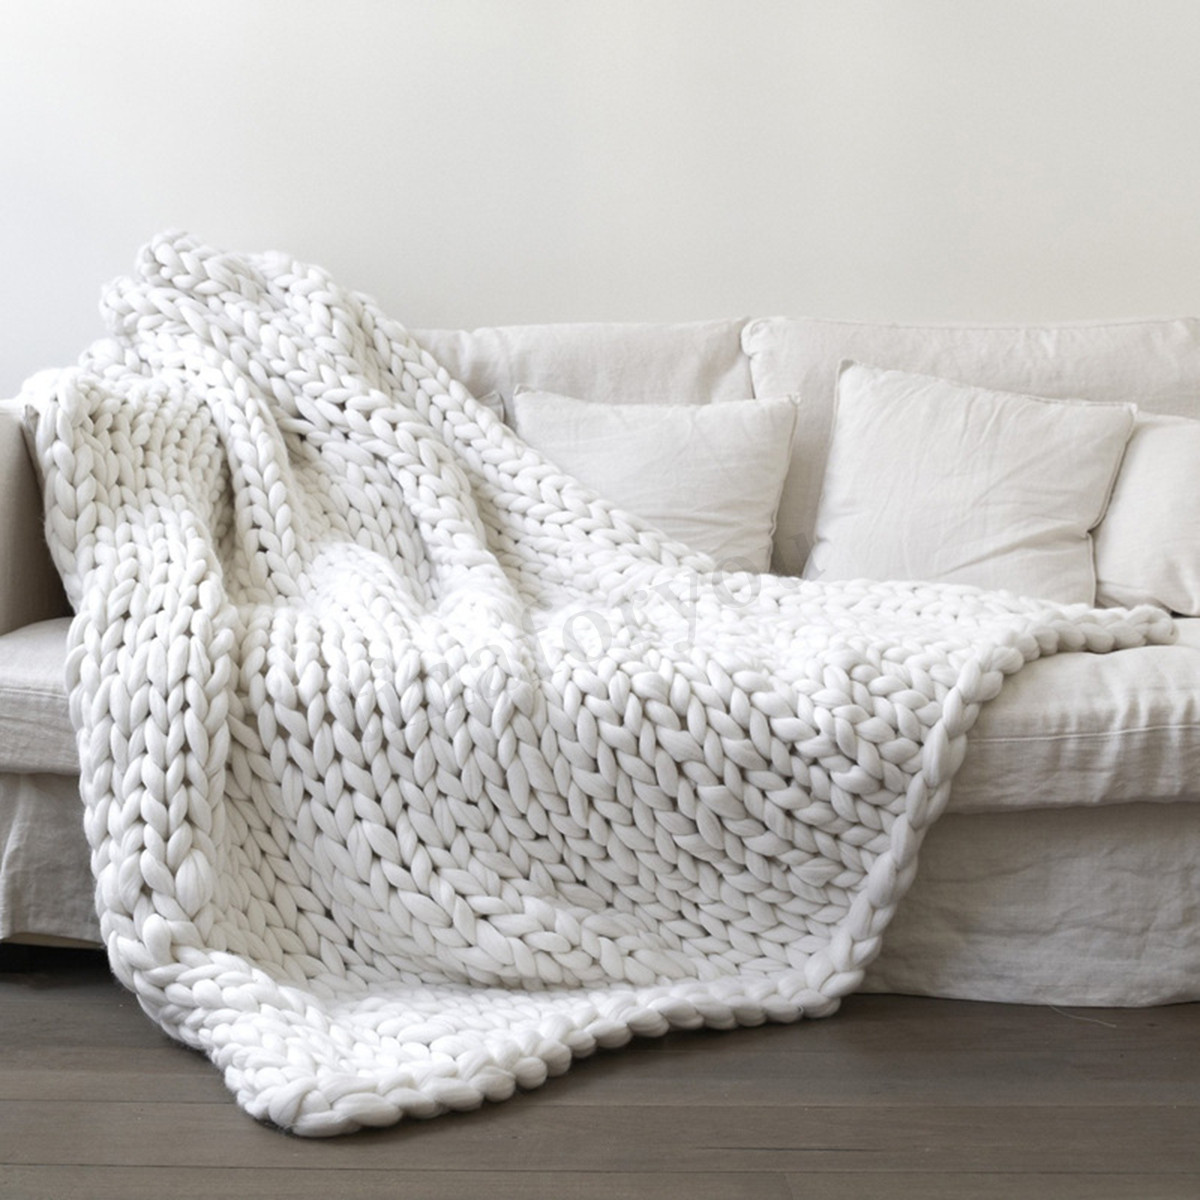 Chunky Knit Throw Lovely soft Warm Handmade Chunky Knit Blanket Thick Yarn Of Superb 50 Pics Chunky Knit Throw